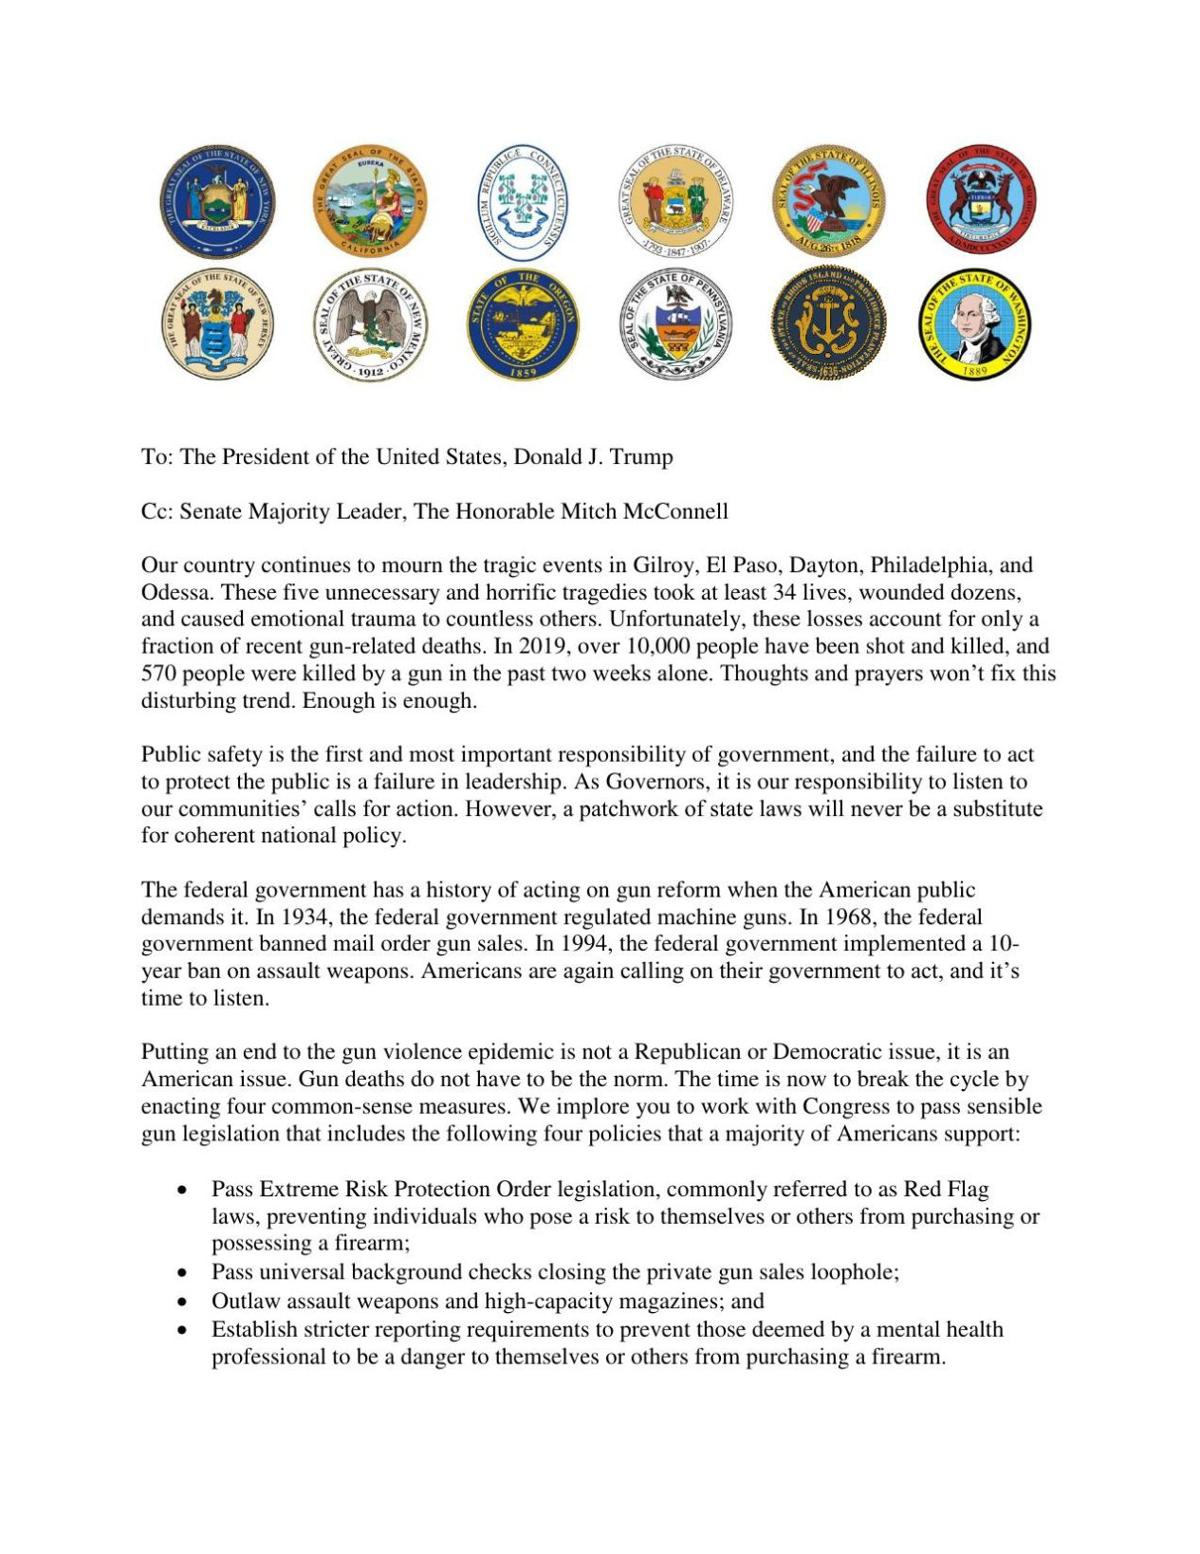 Governors' gun safety letter